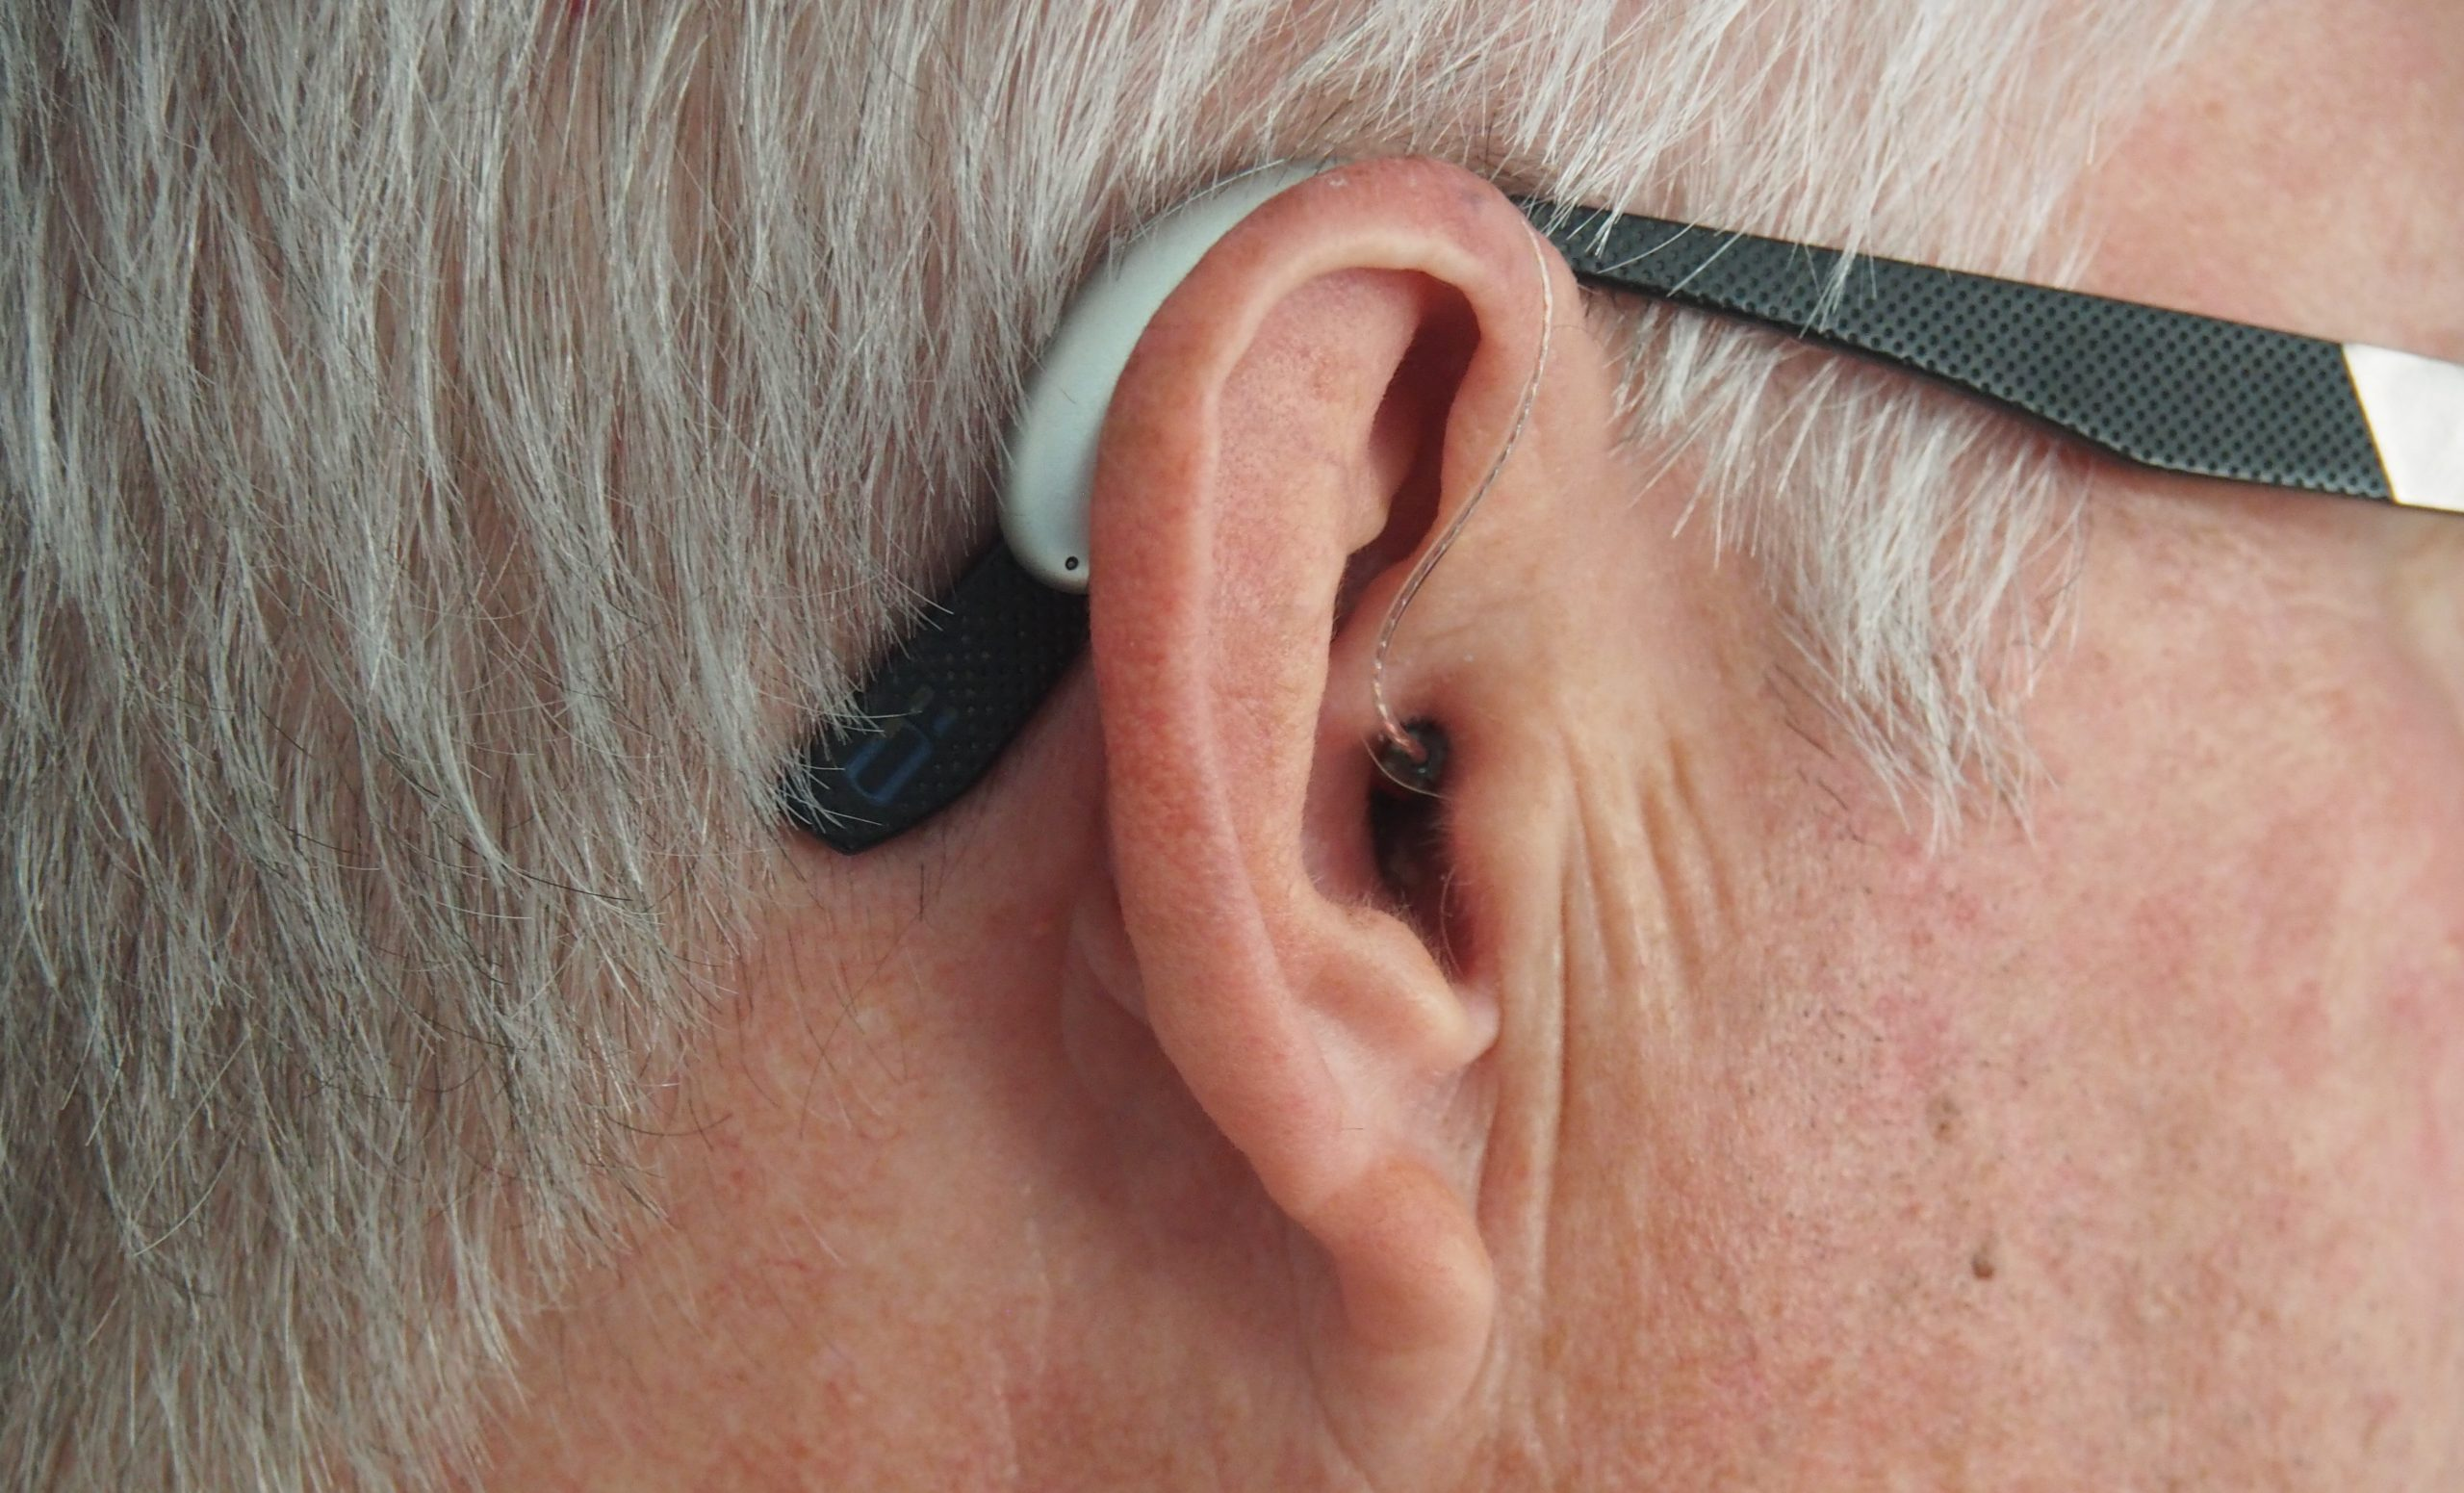 A close up of a man's ear with a hearing aid on.